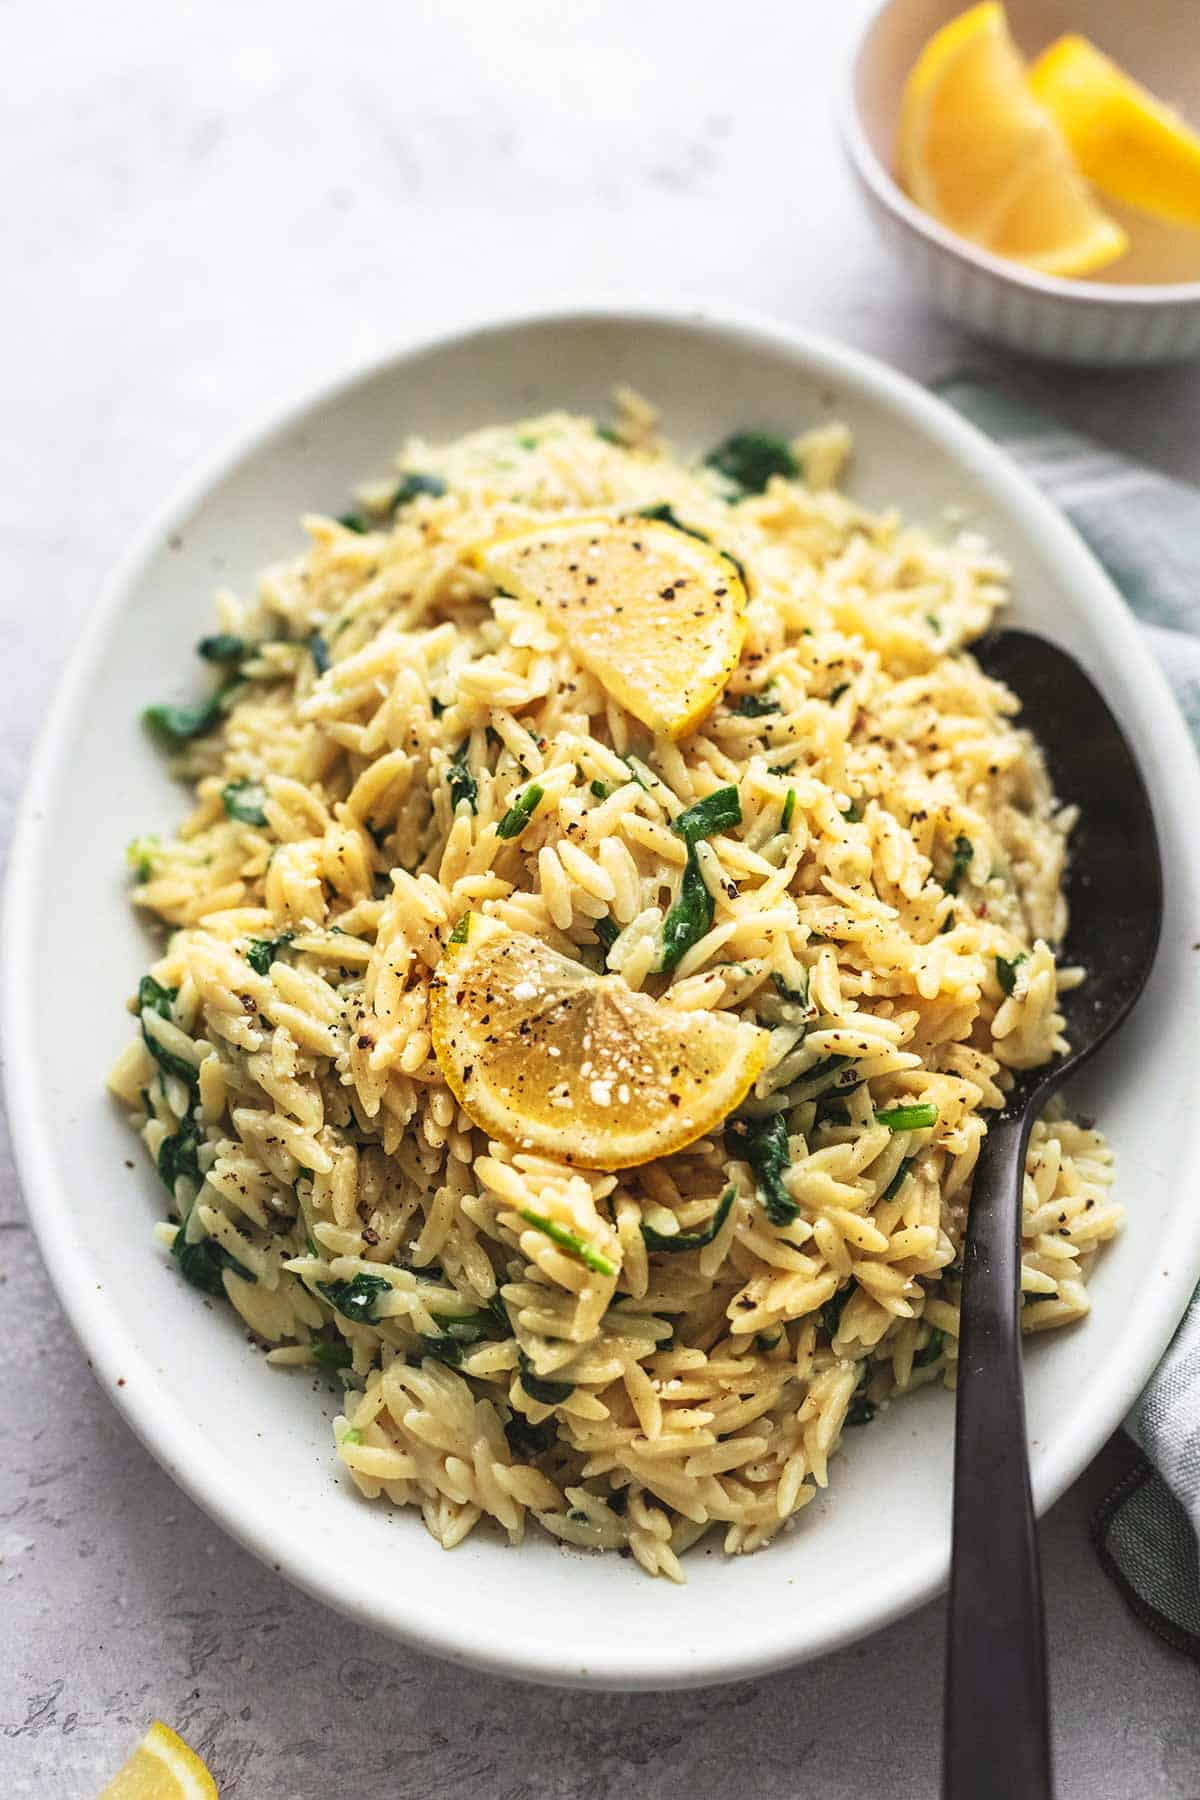 creamy parmesan spinach orzo with a serving spoon on a platter.